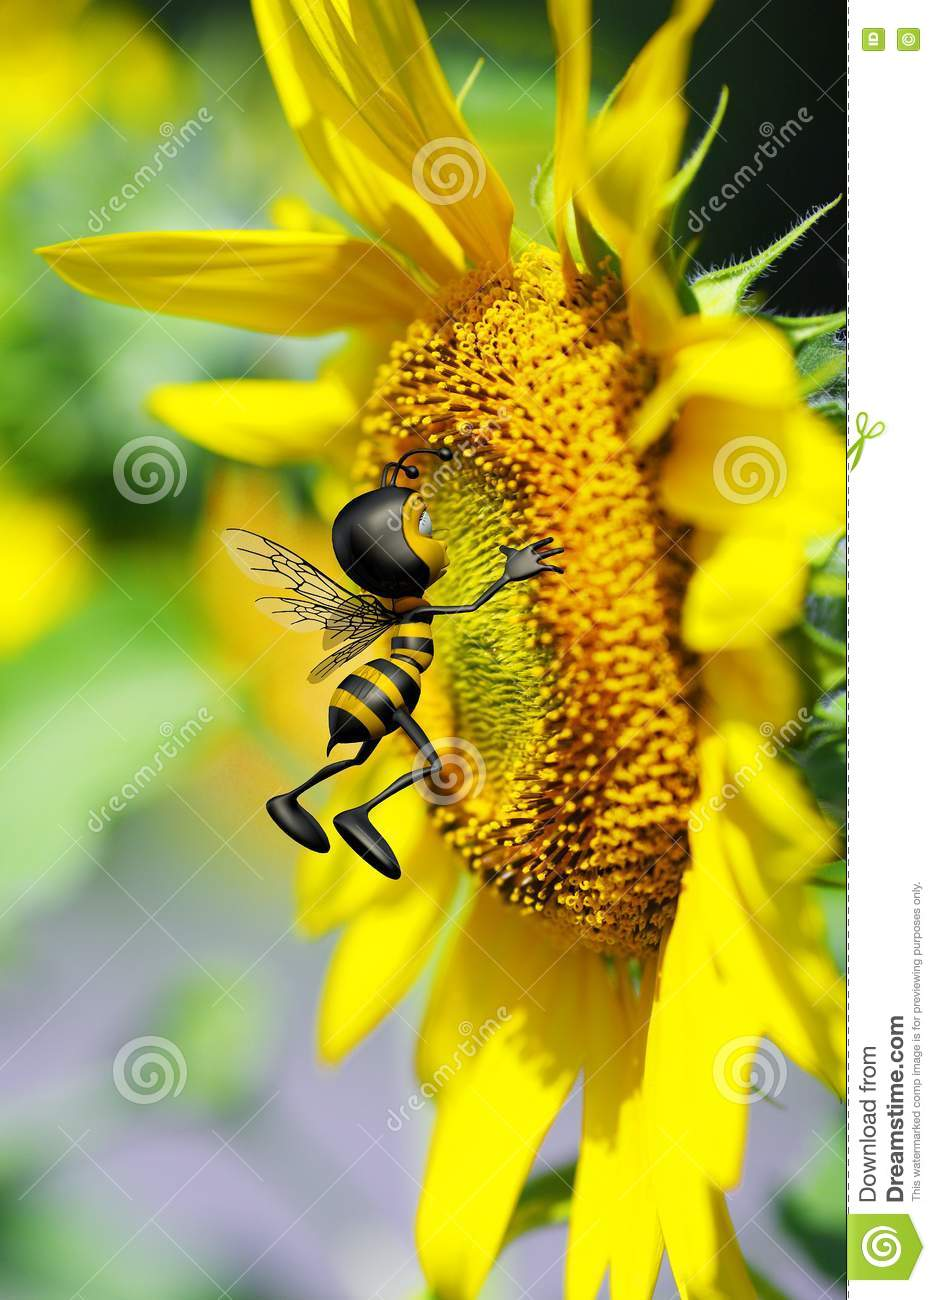 Honey Bee Kissing The Big Yellow Flower Royalty Free Stock Image ...